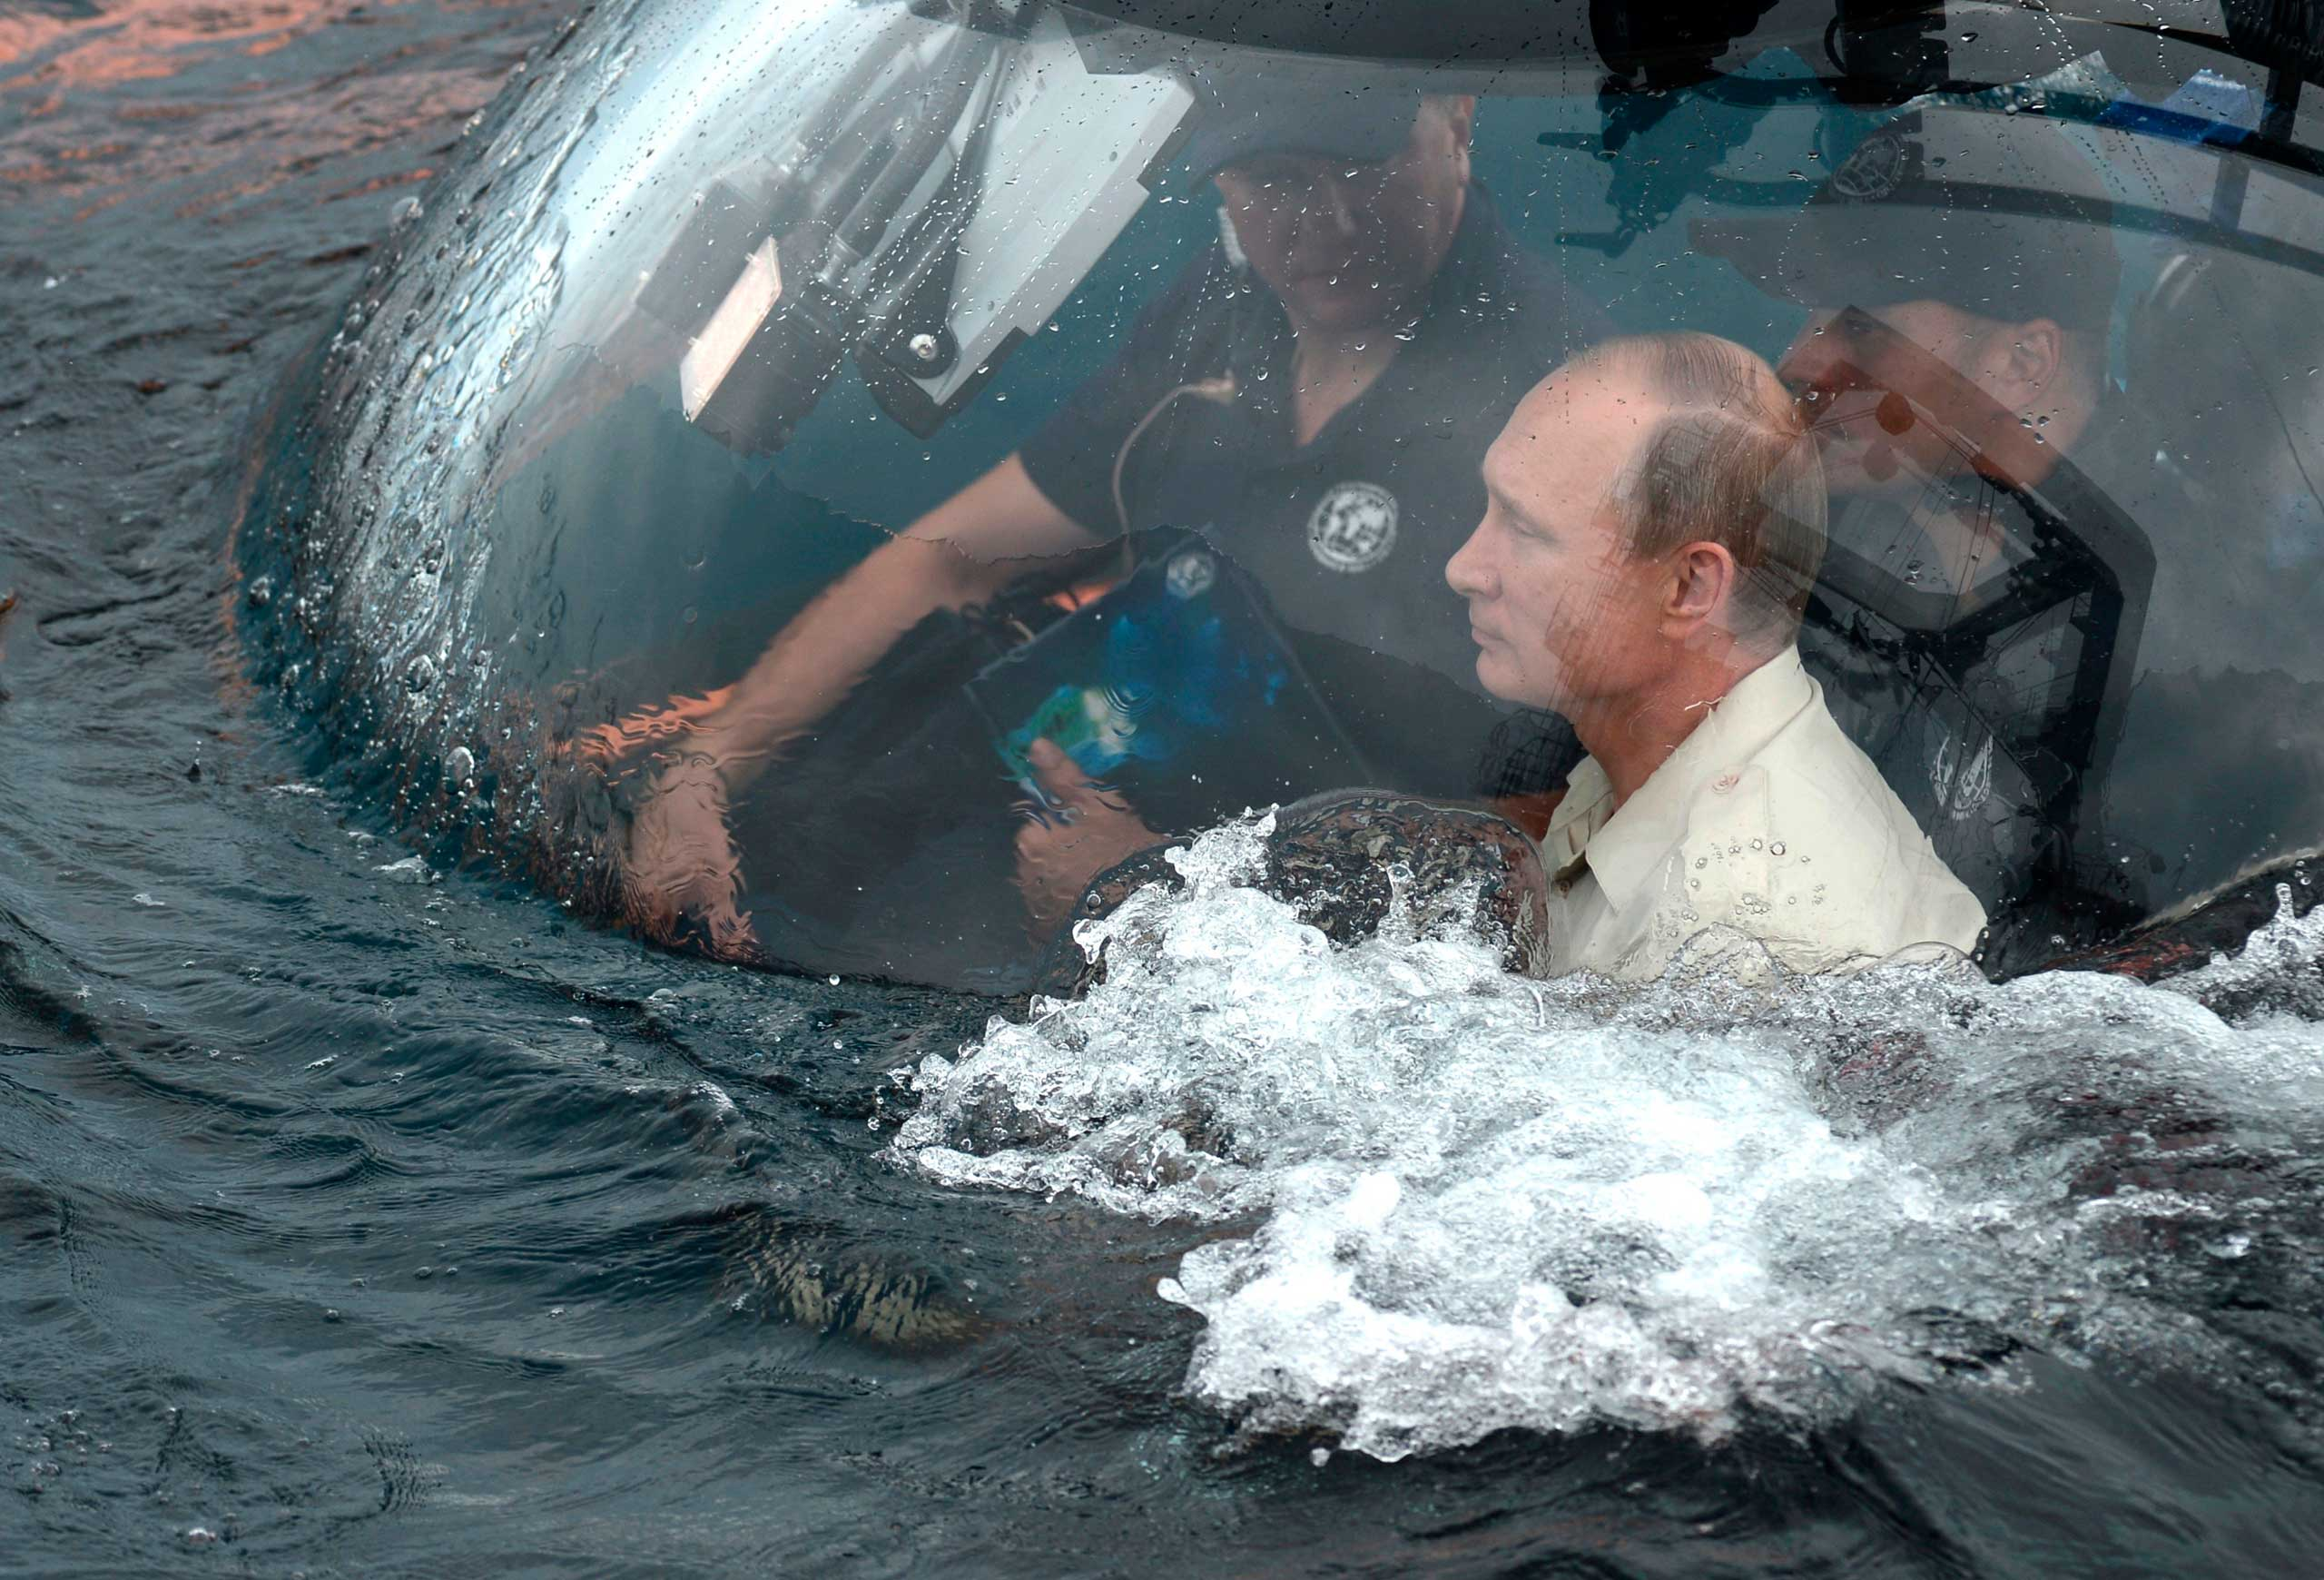 President Putin sits on board a bathyscaphe as it plunges into the Black Sea along the coast of Sevastopol, on  Aug. 18, 2015.